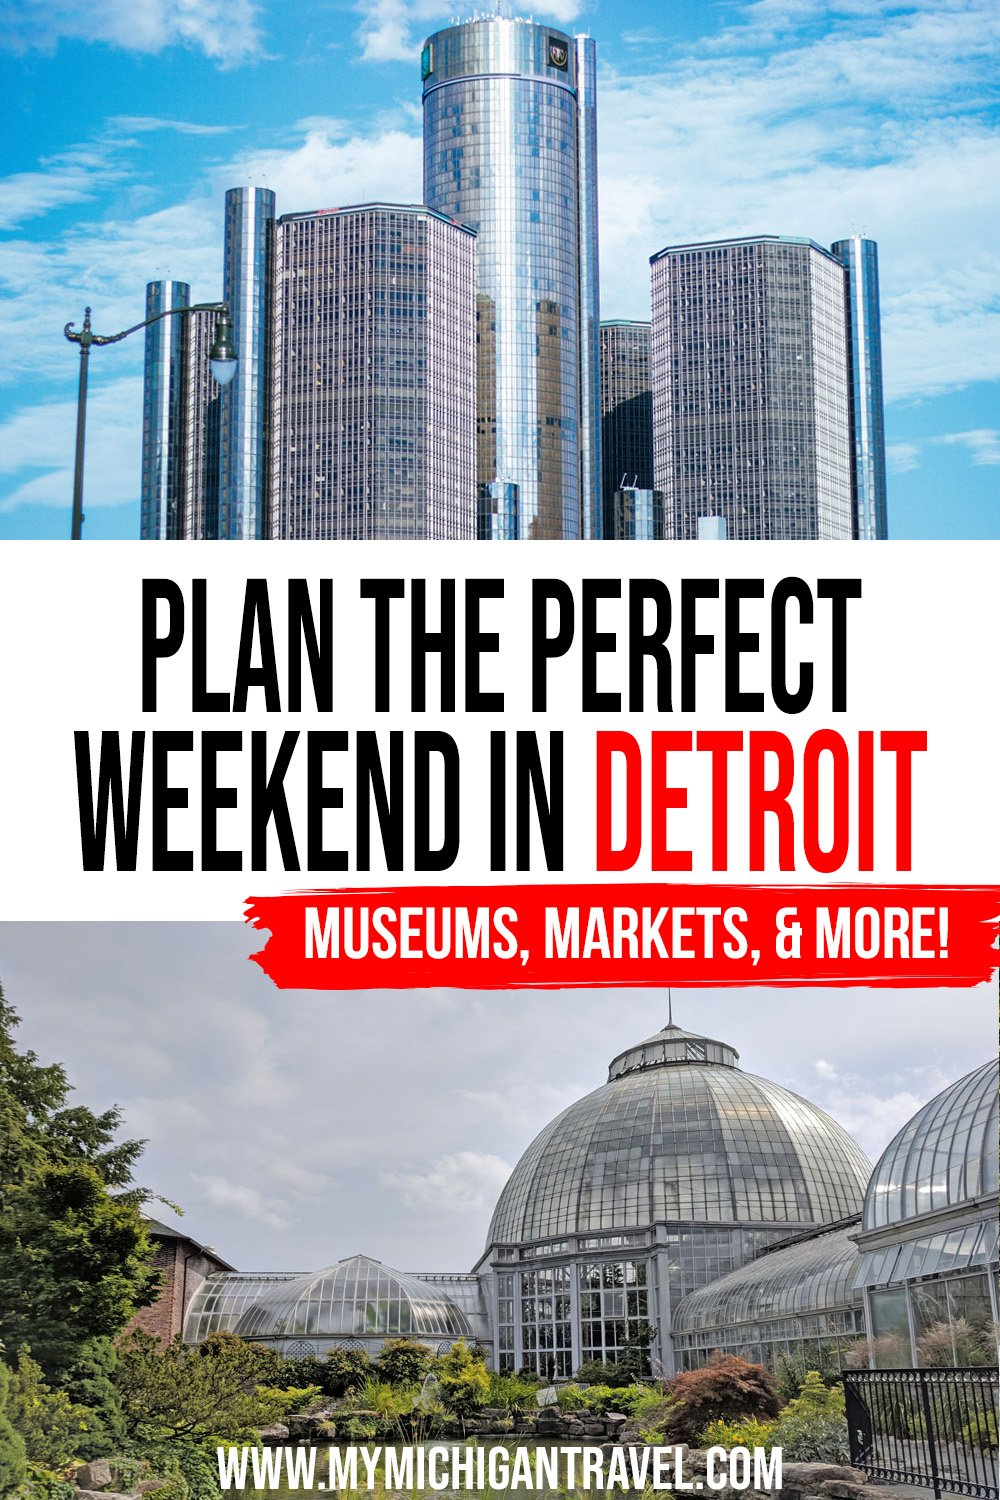 """Photo collage of the tall, cylindrical towers of the Renaissance Center and the domed top of the Scripps Conservatory with text overlay reading """"Plan the perfect weekend in Detroit - Museums, Markets, & More!"""""""